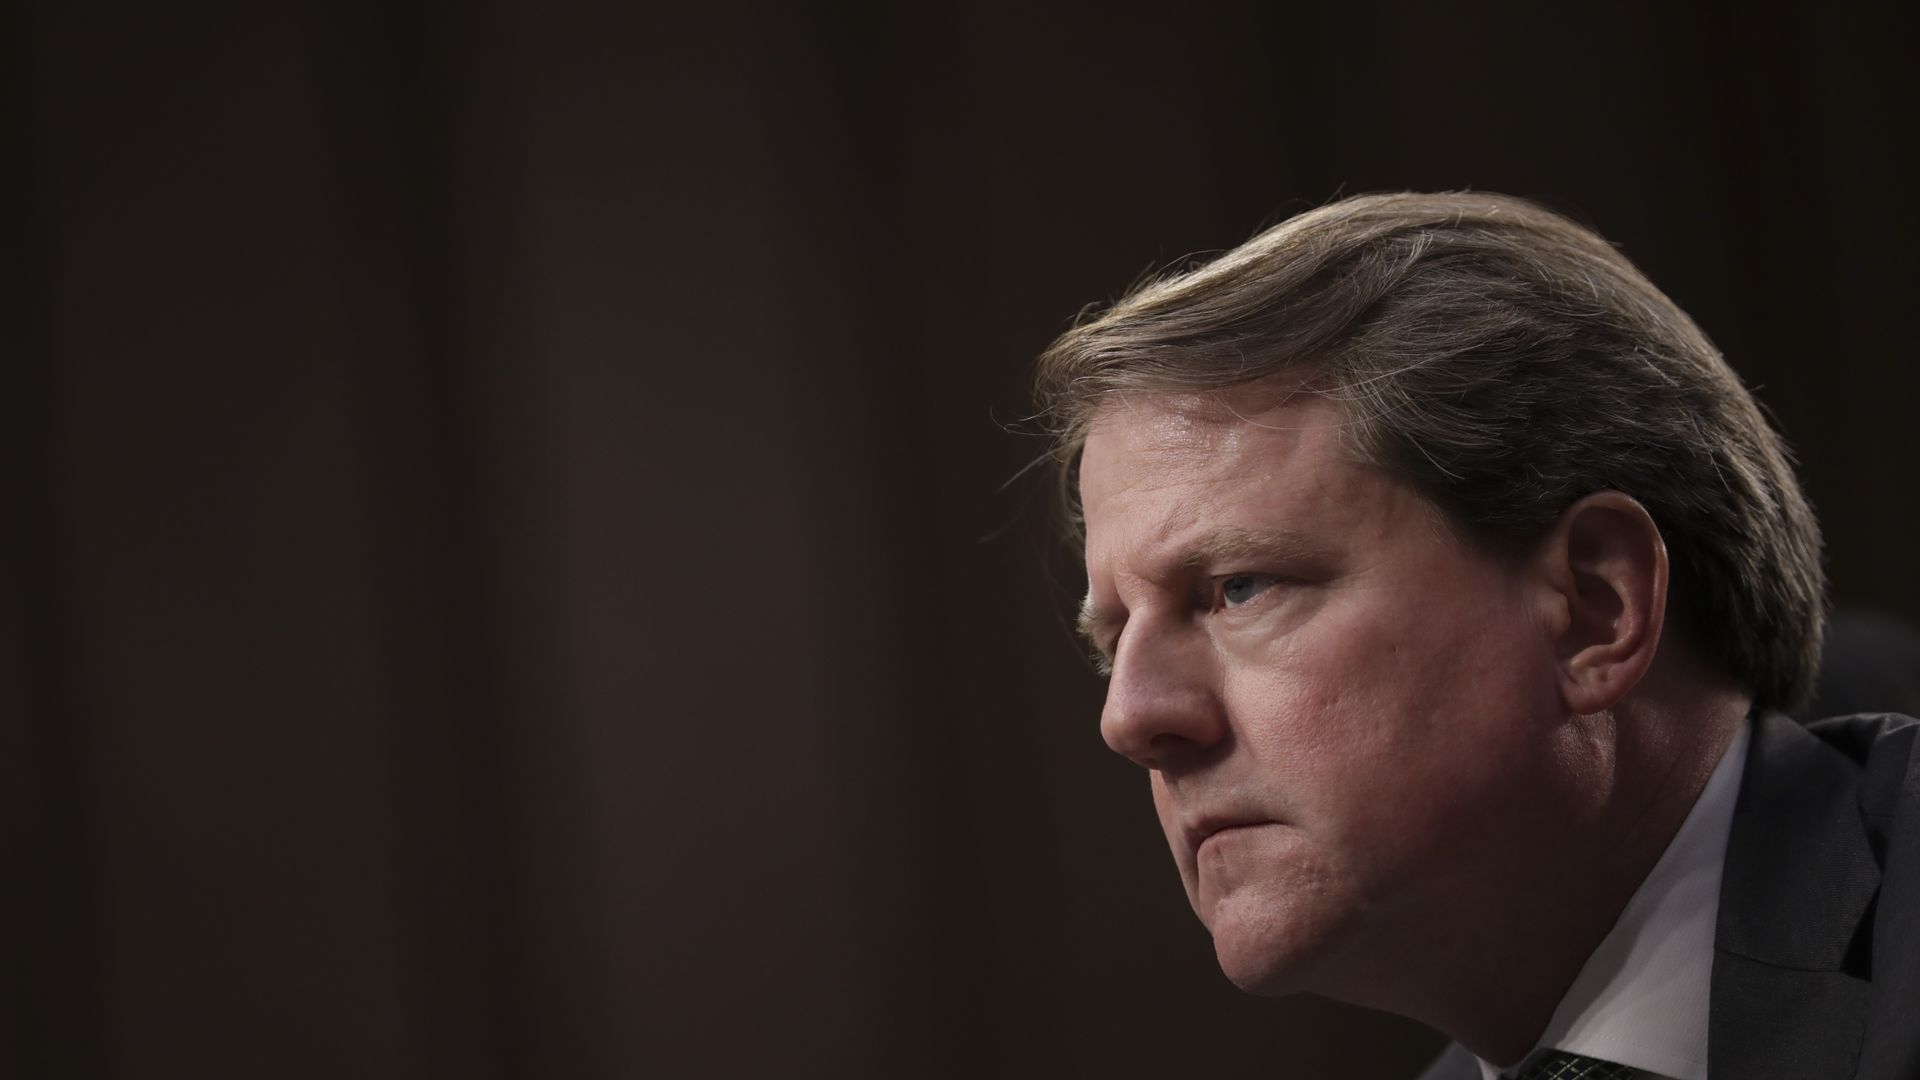 Don McGahn responds to accusations against his credibility